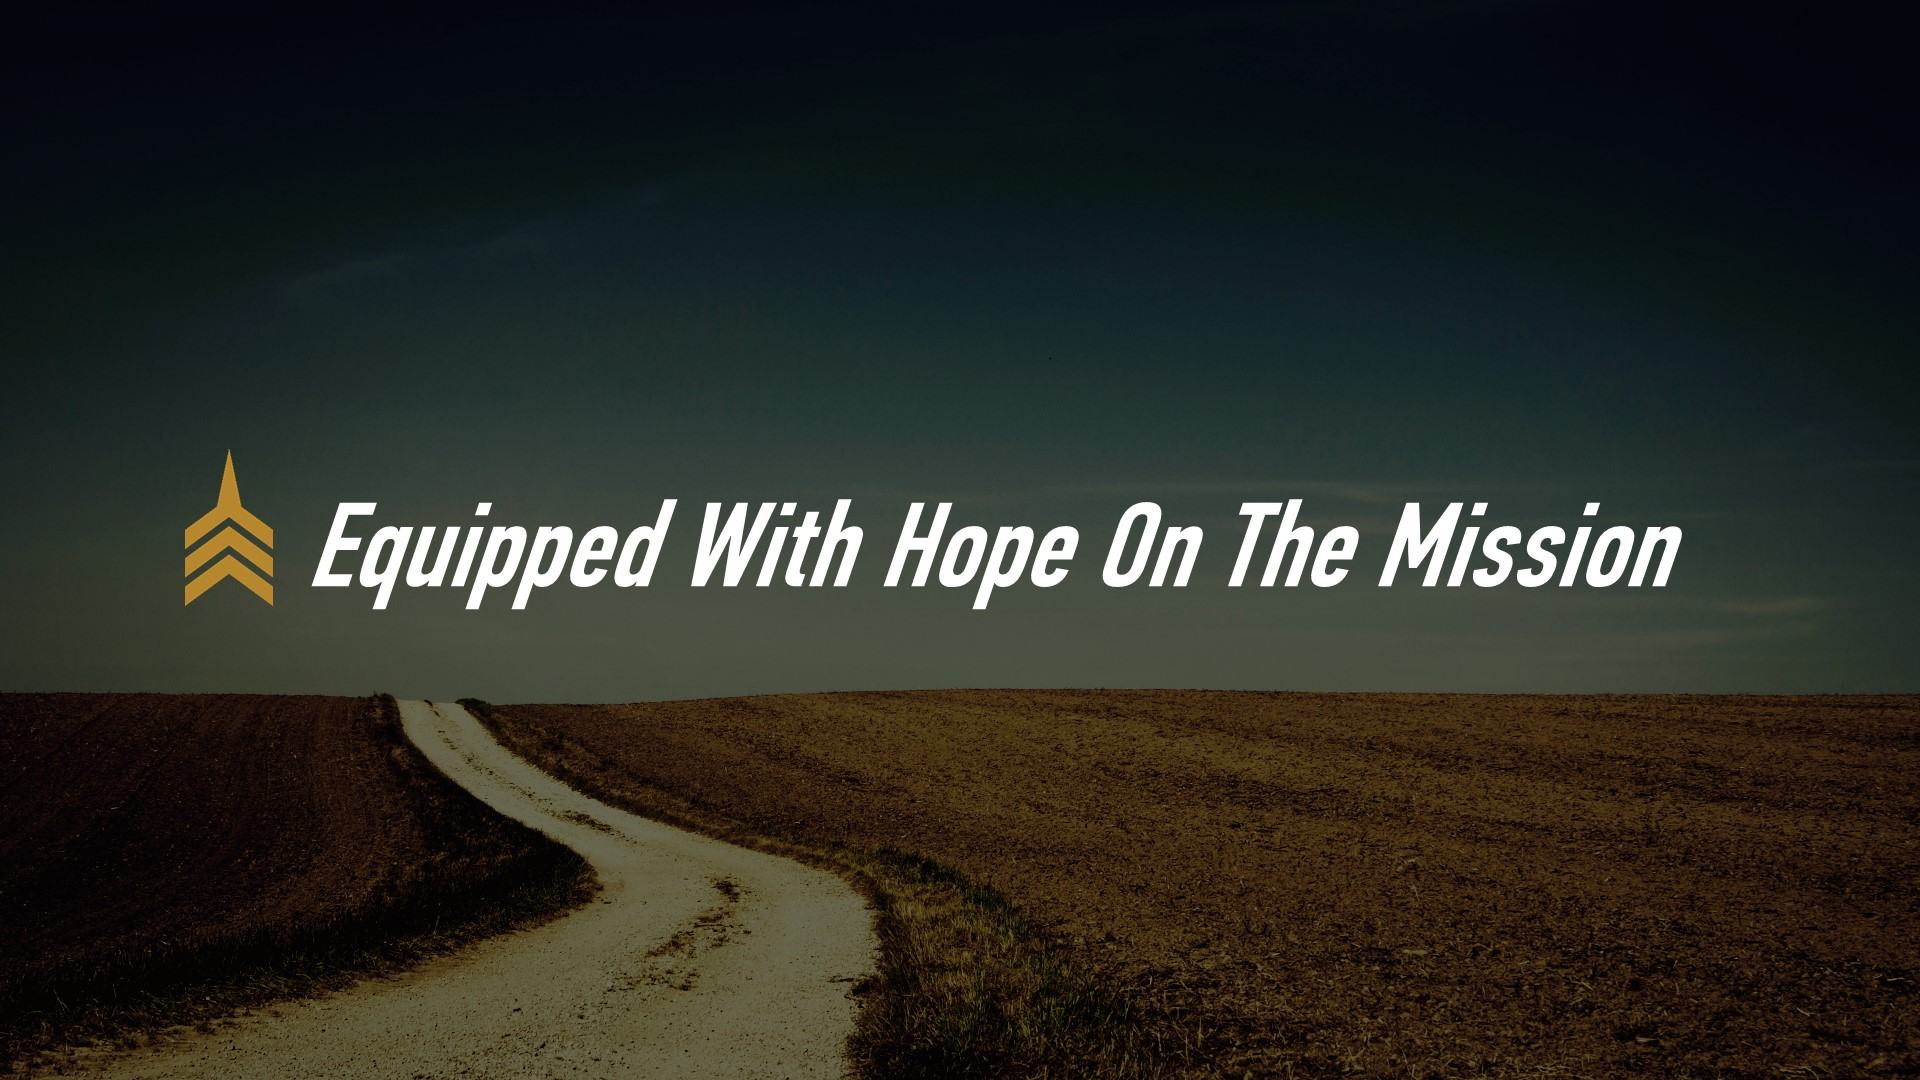 20181202 Equipped With Hope On The Mission.JPG